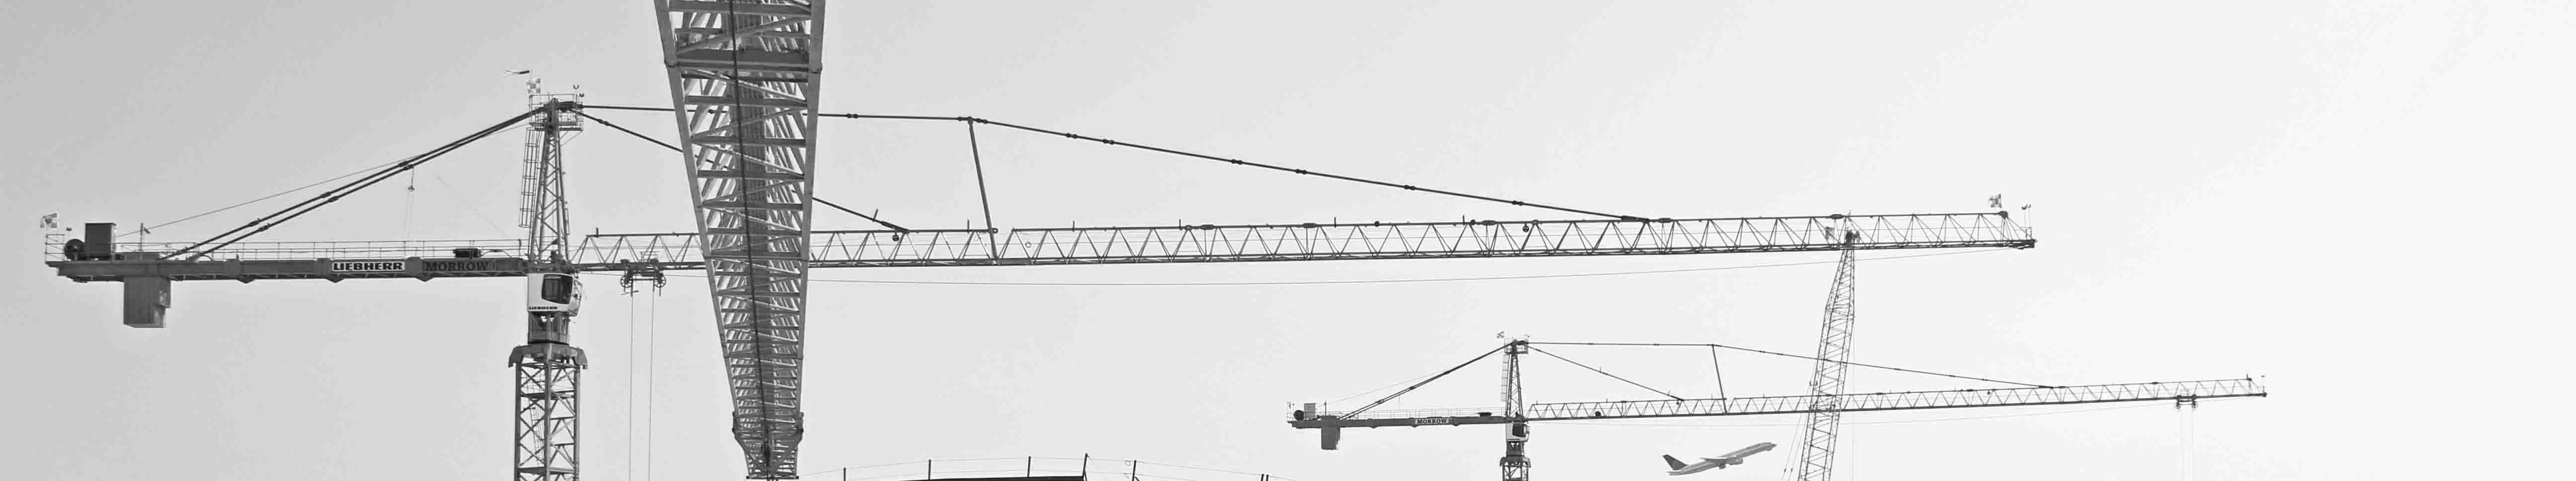 Osha Bridge Crane Inspection : Mobile crane accidents inspection operator